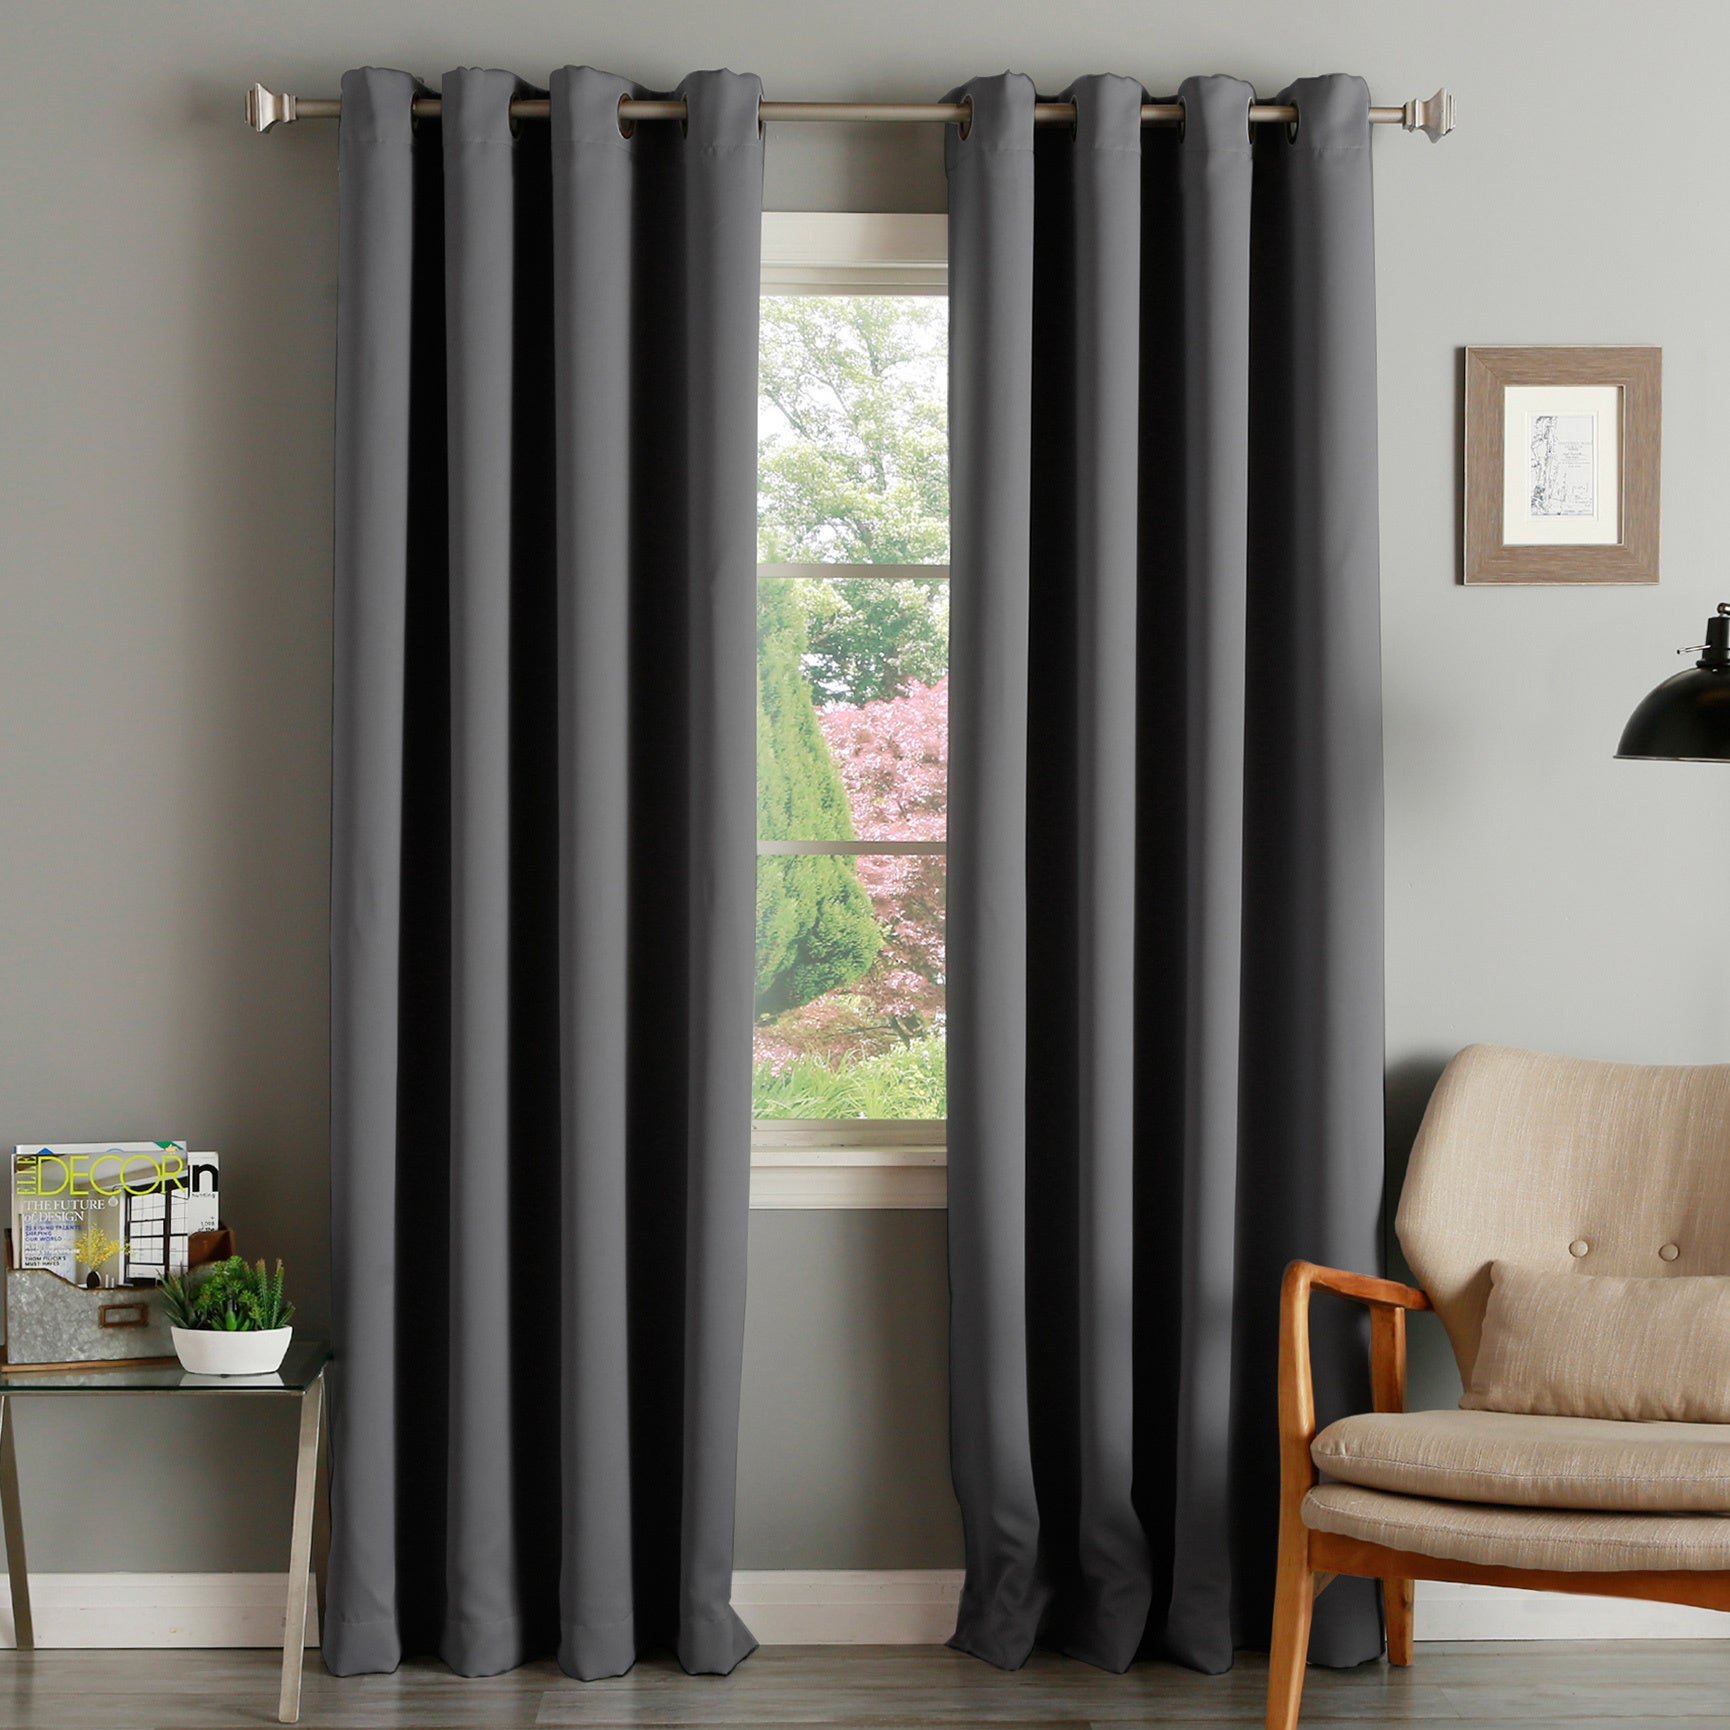 Details about Curtains Grommet Top Insulated 84-inch Blackout Curtain ...